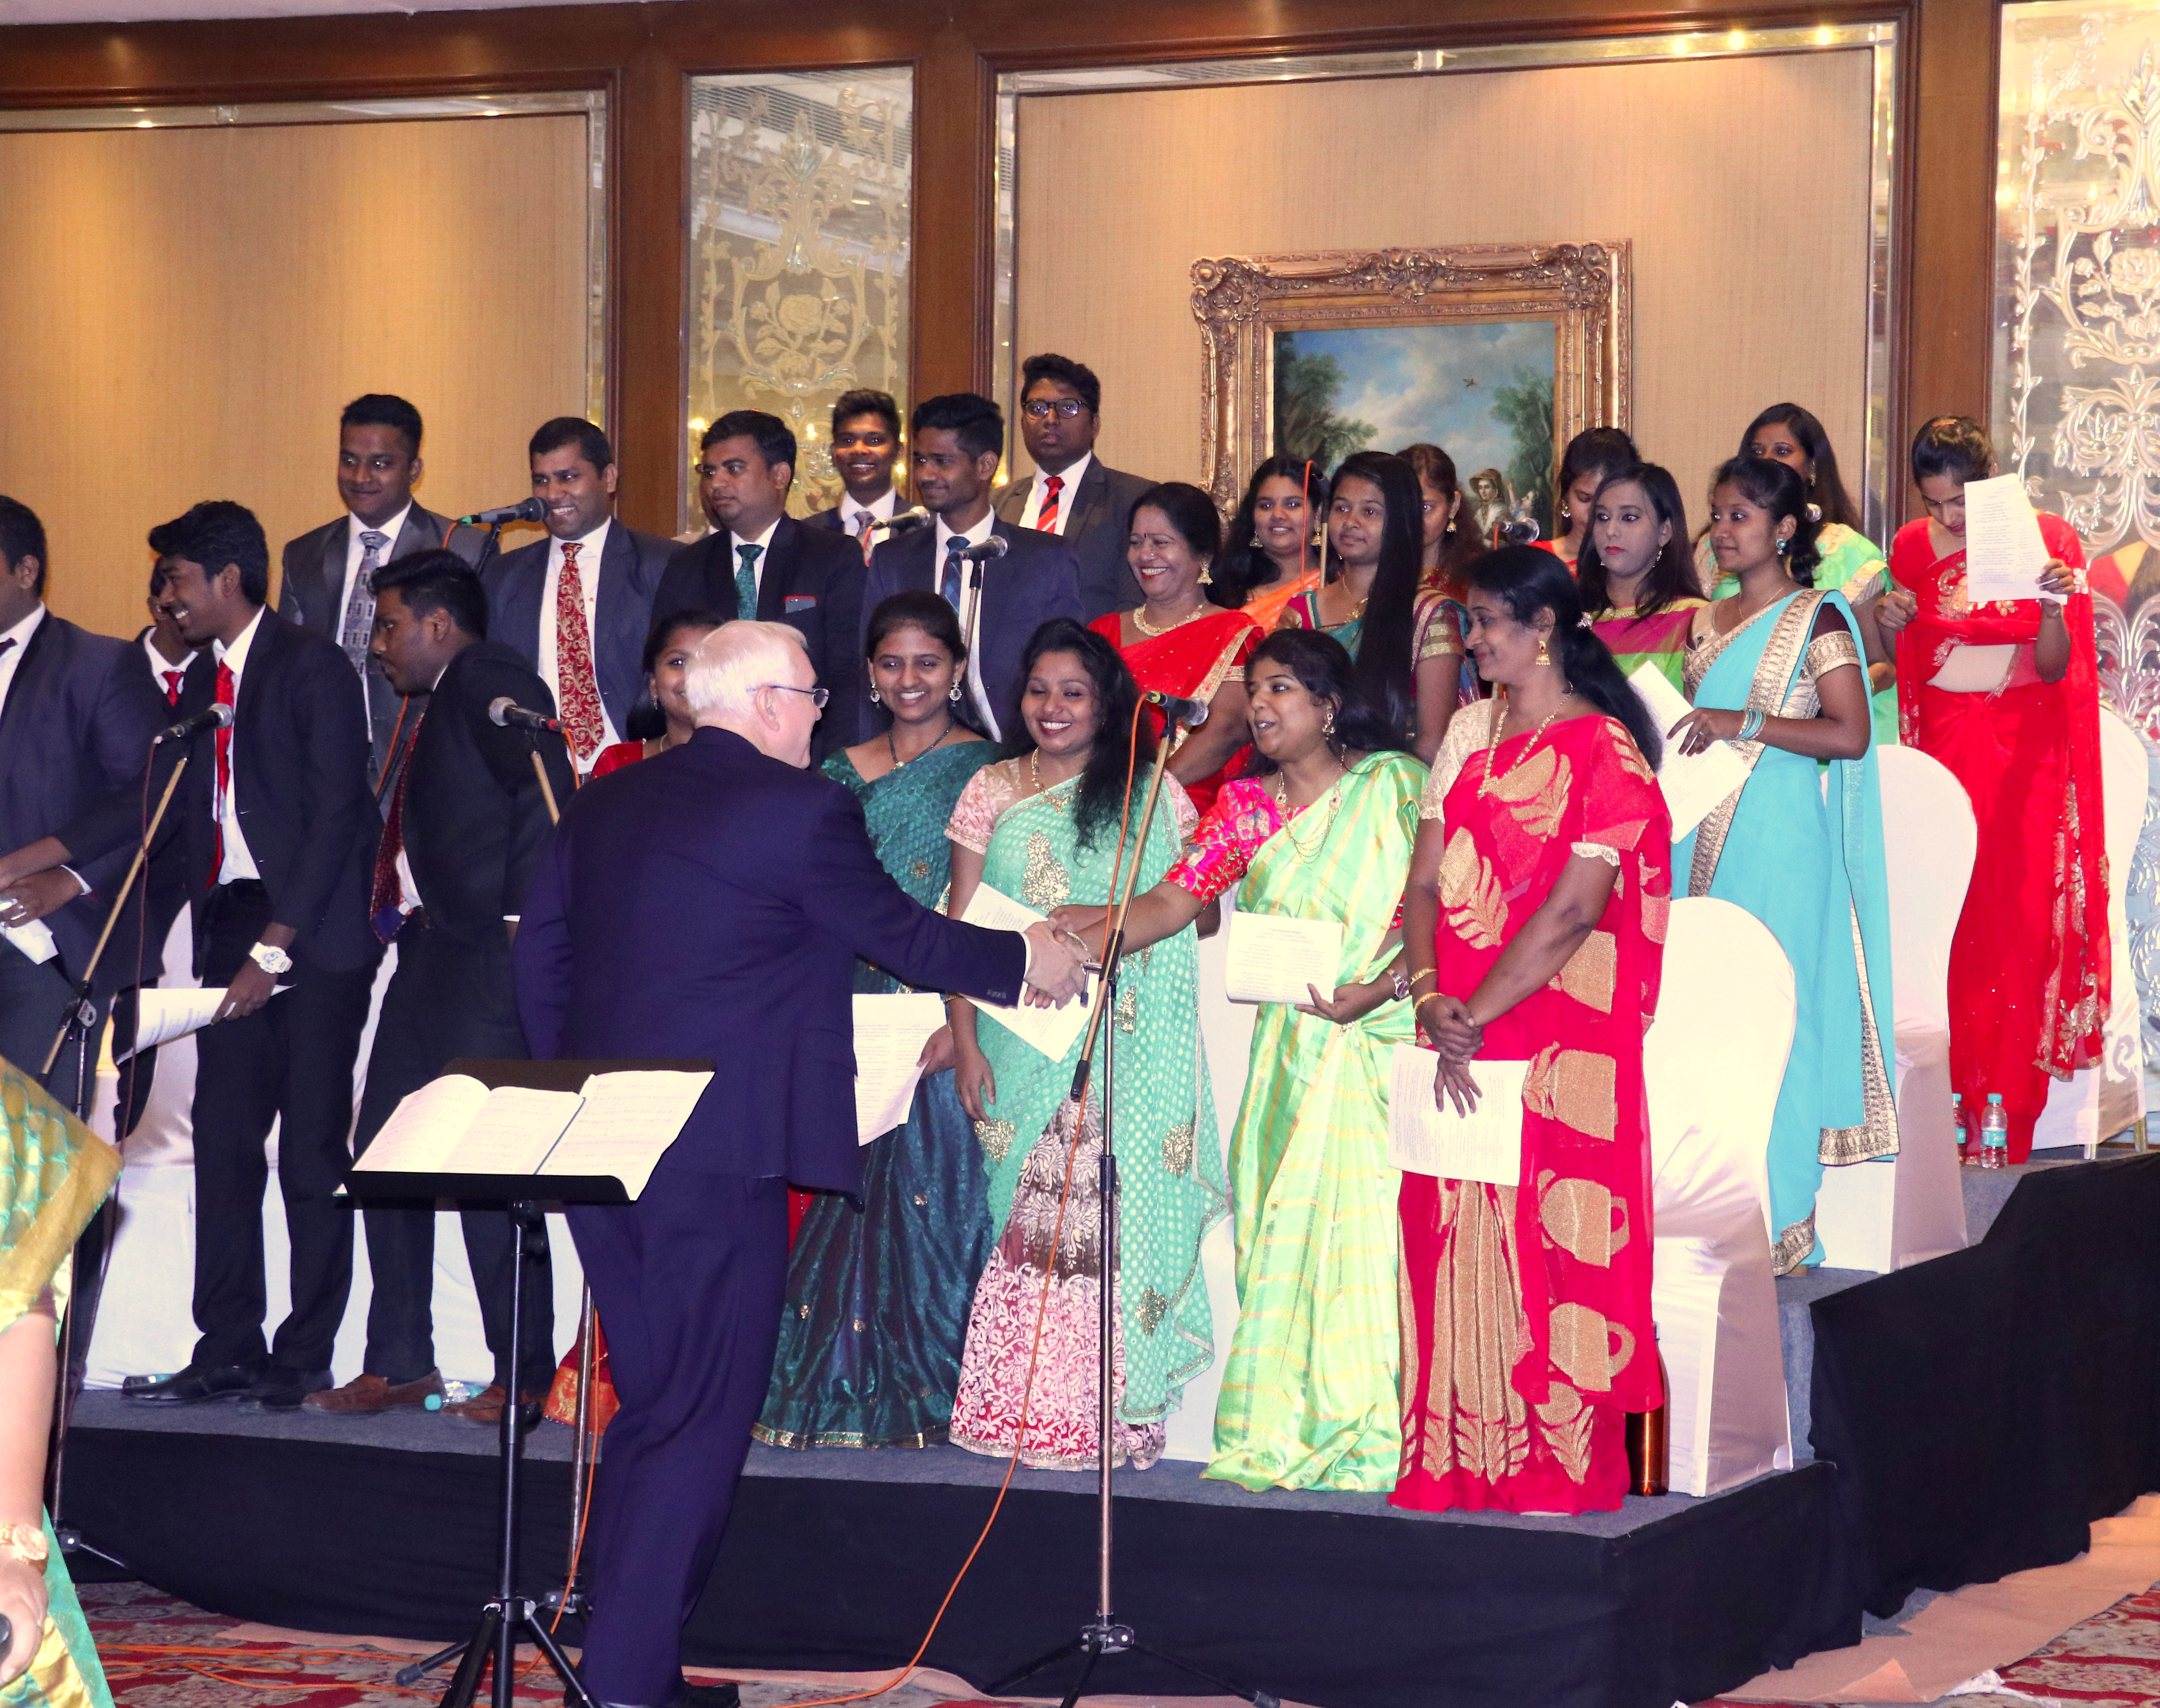 Elder Robert C. Gay shakes hands with members of the choir during a meeting with members in Hyderabad, India, in May 2019.